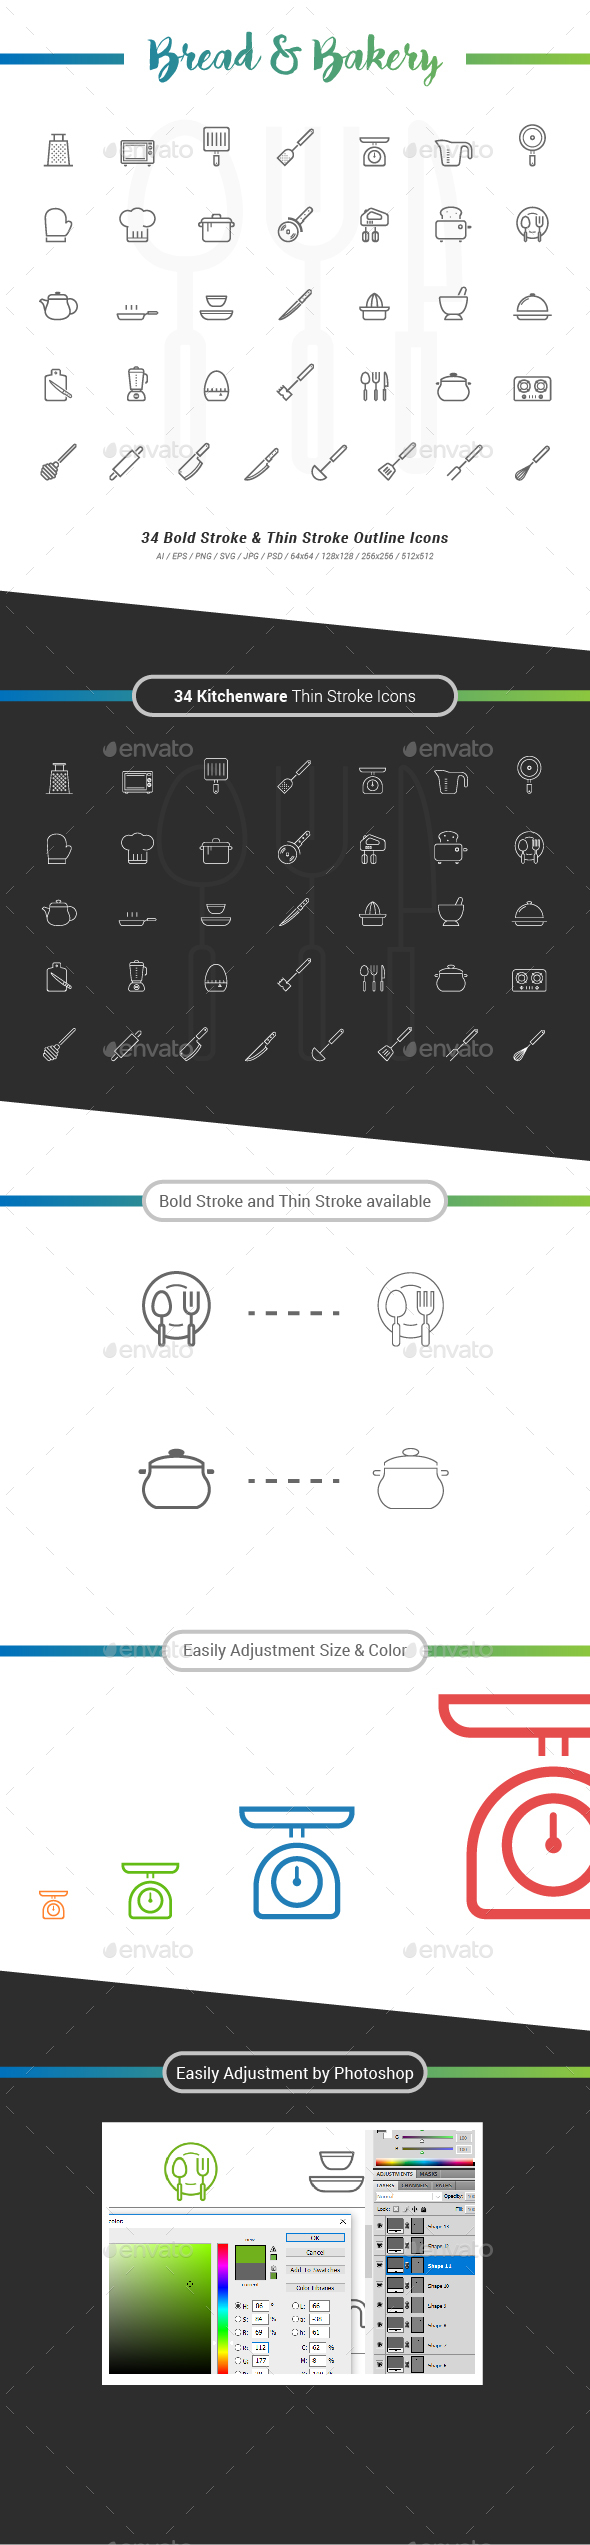 34 Kitchenware Outline Stroke Icon - Objects Icons